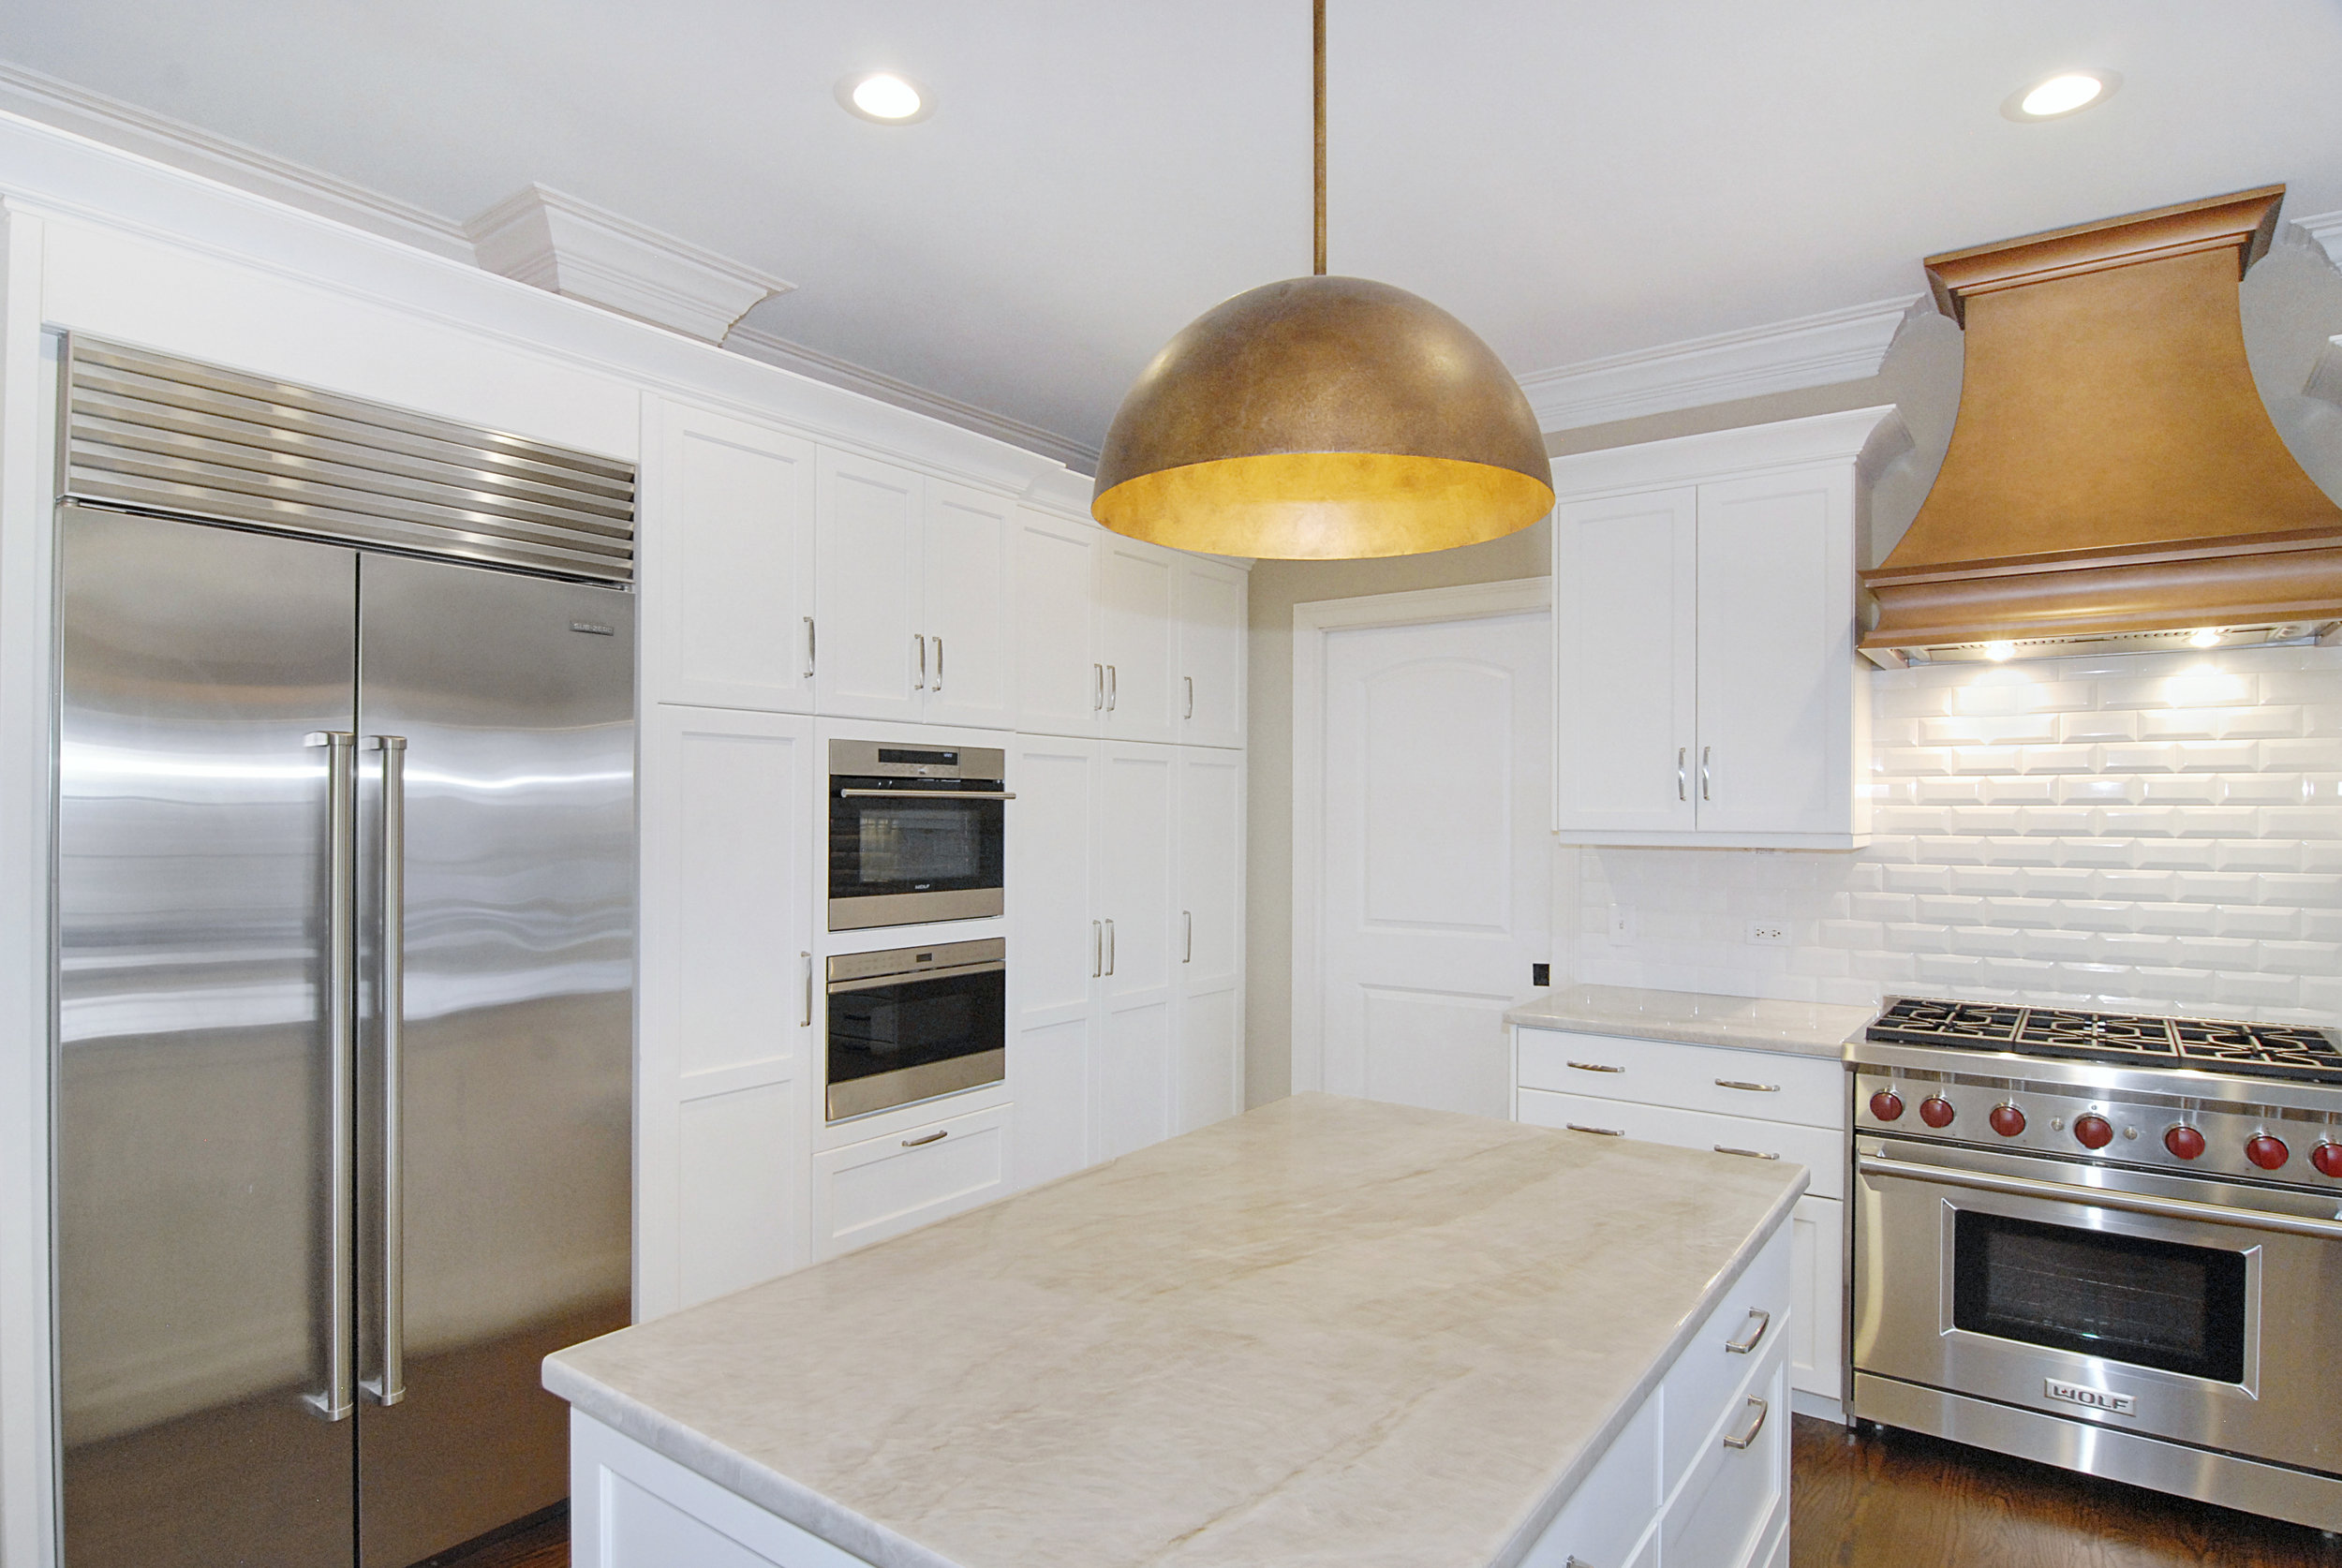 GLEN ELLYN KITCHEN RENOVATIONS